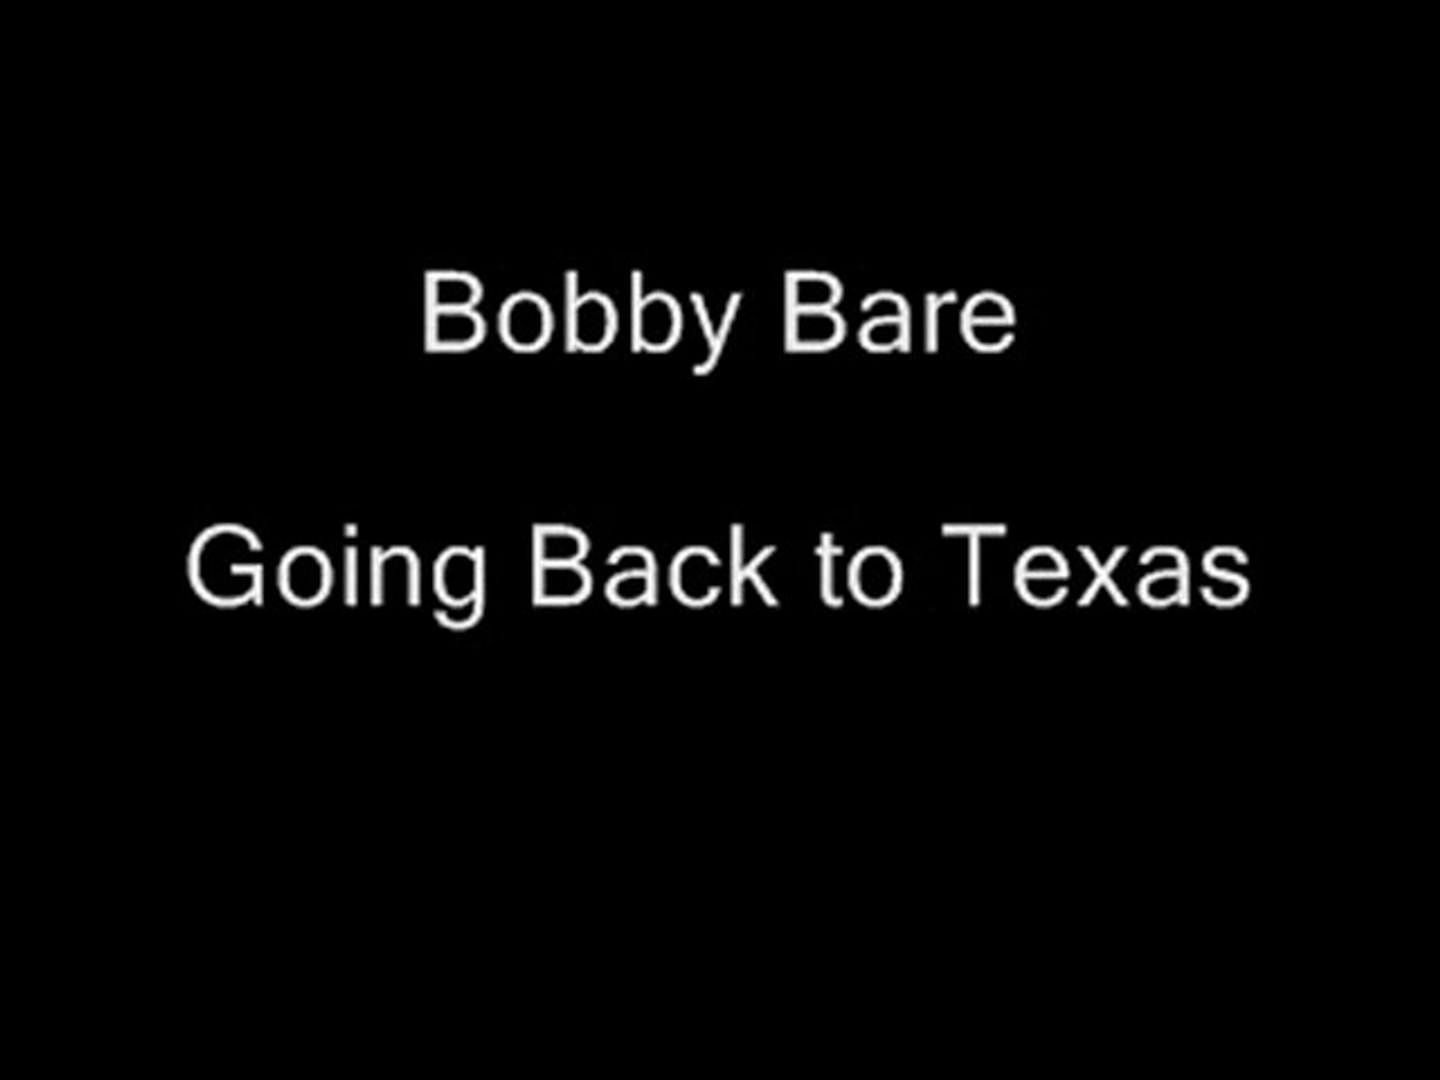 Going Back To Texas - Bobby Bare